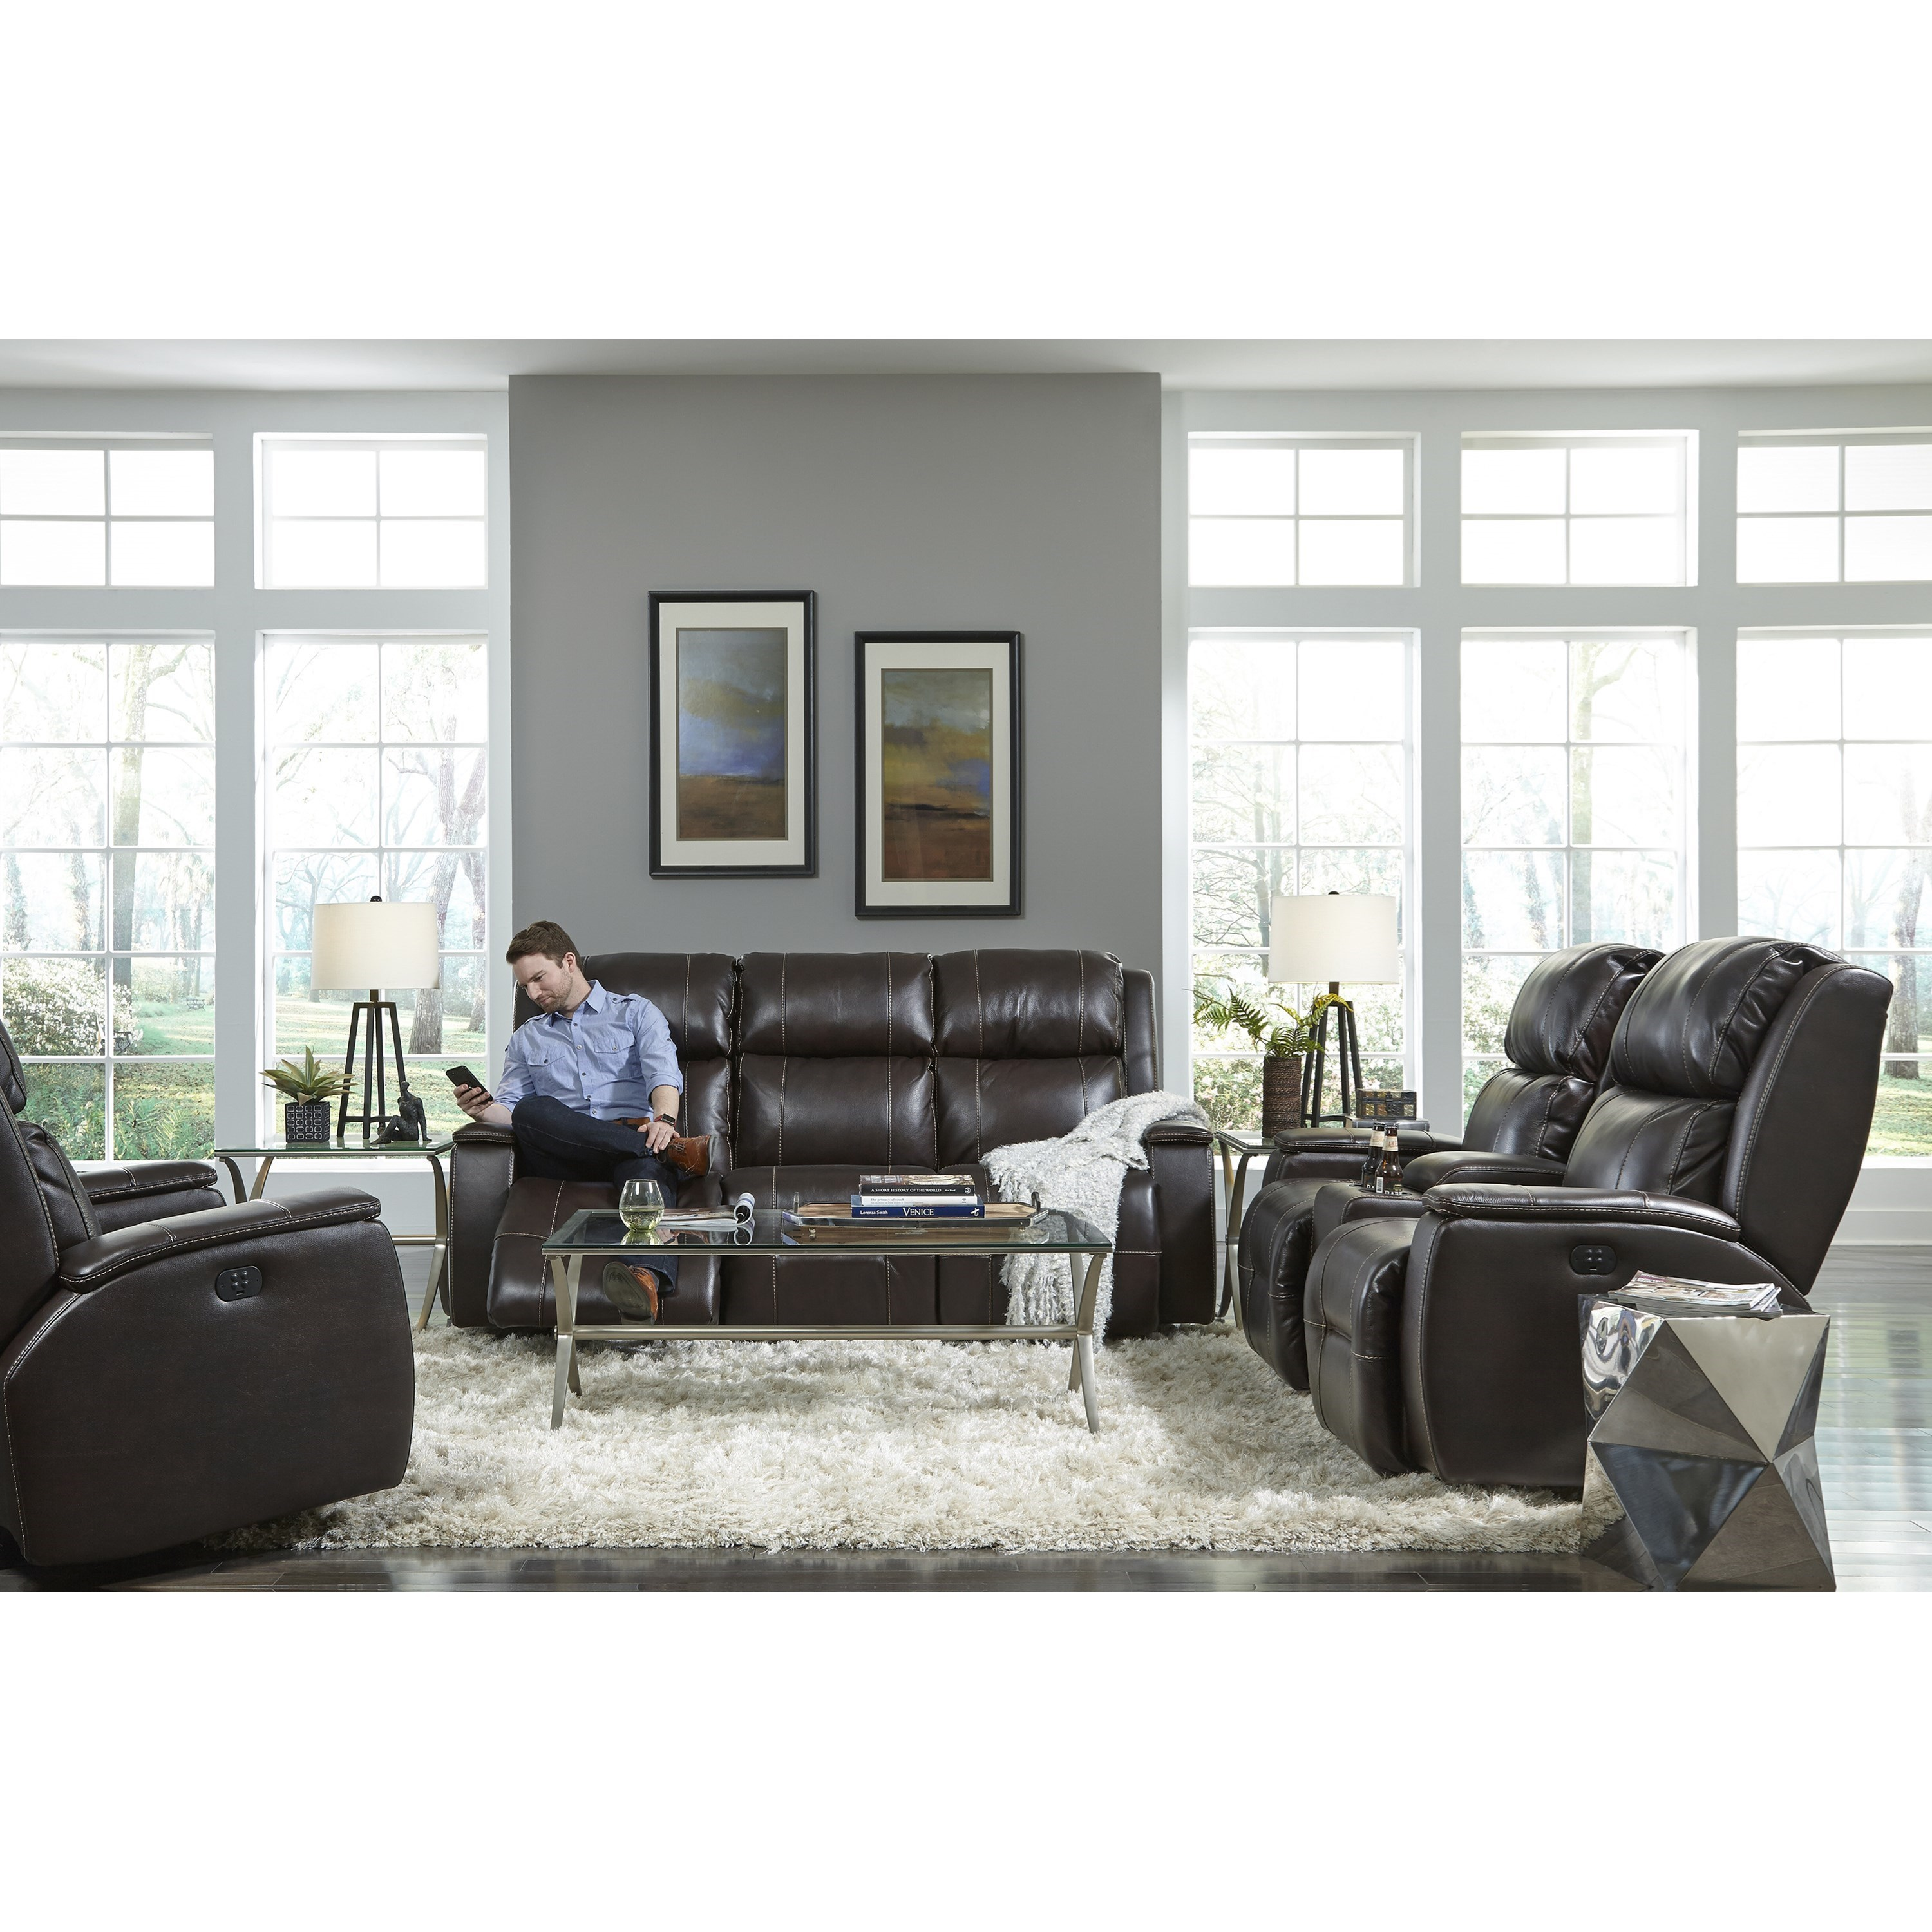 Best Home Furnishings Colton S740cz4 Power Space Saver Reclining Sofa With Power Tilt Headrest